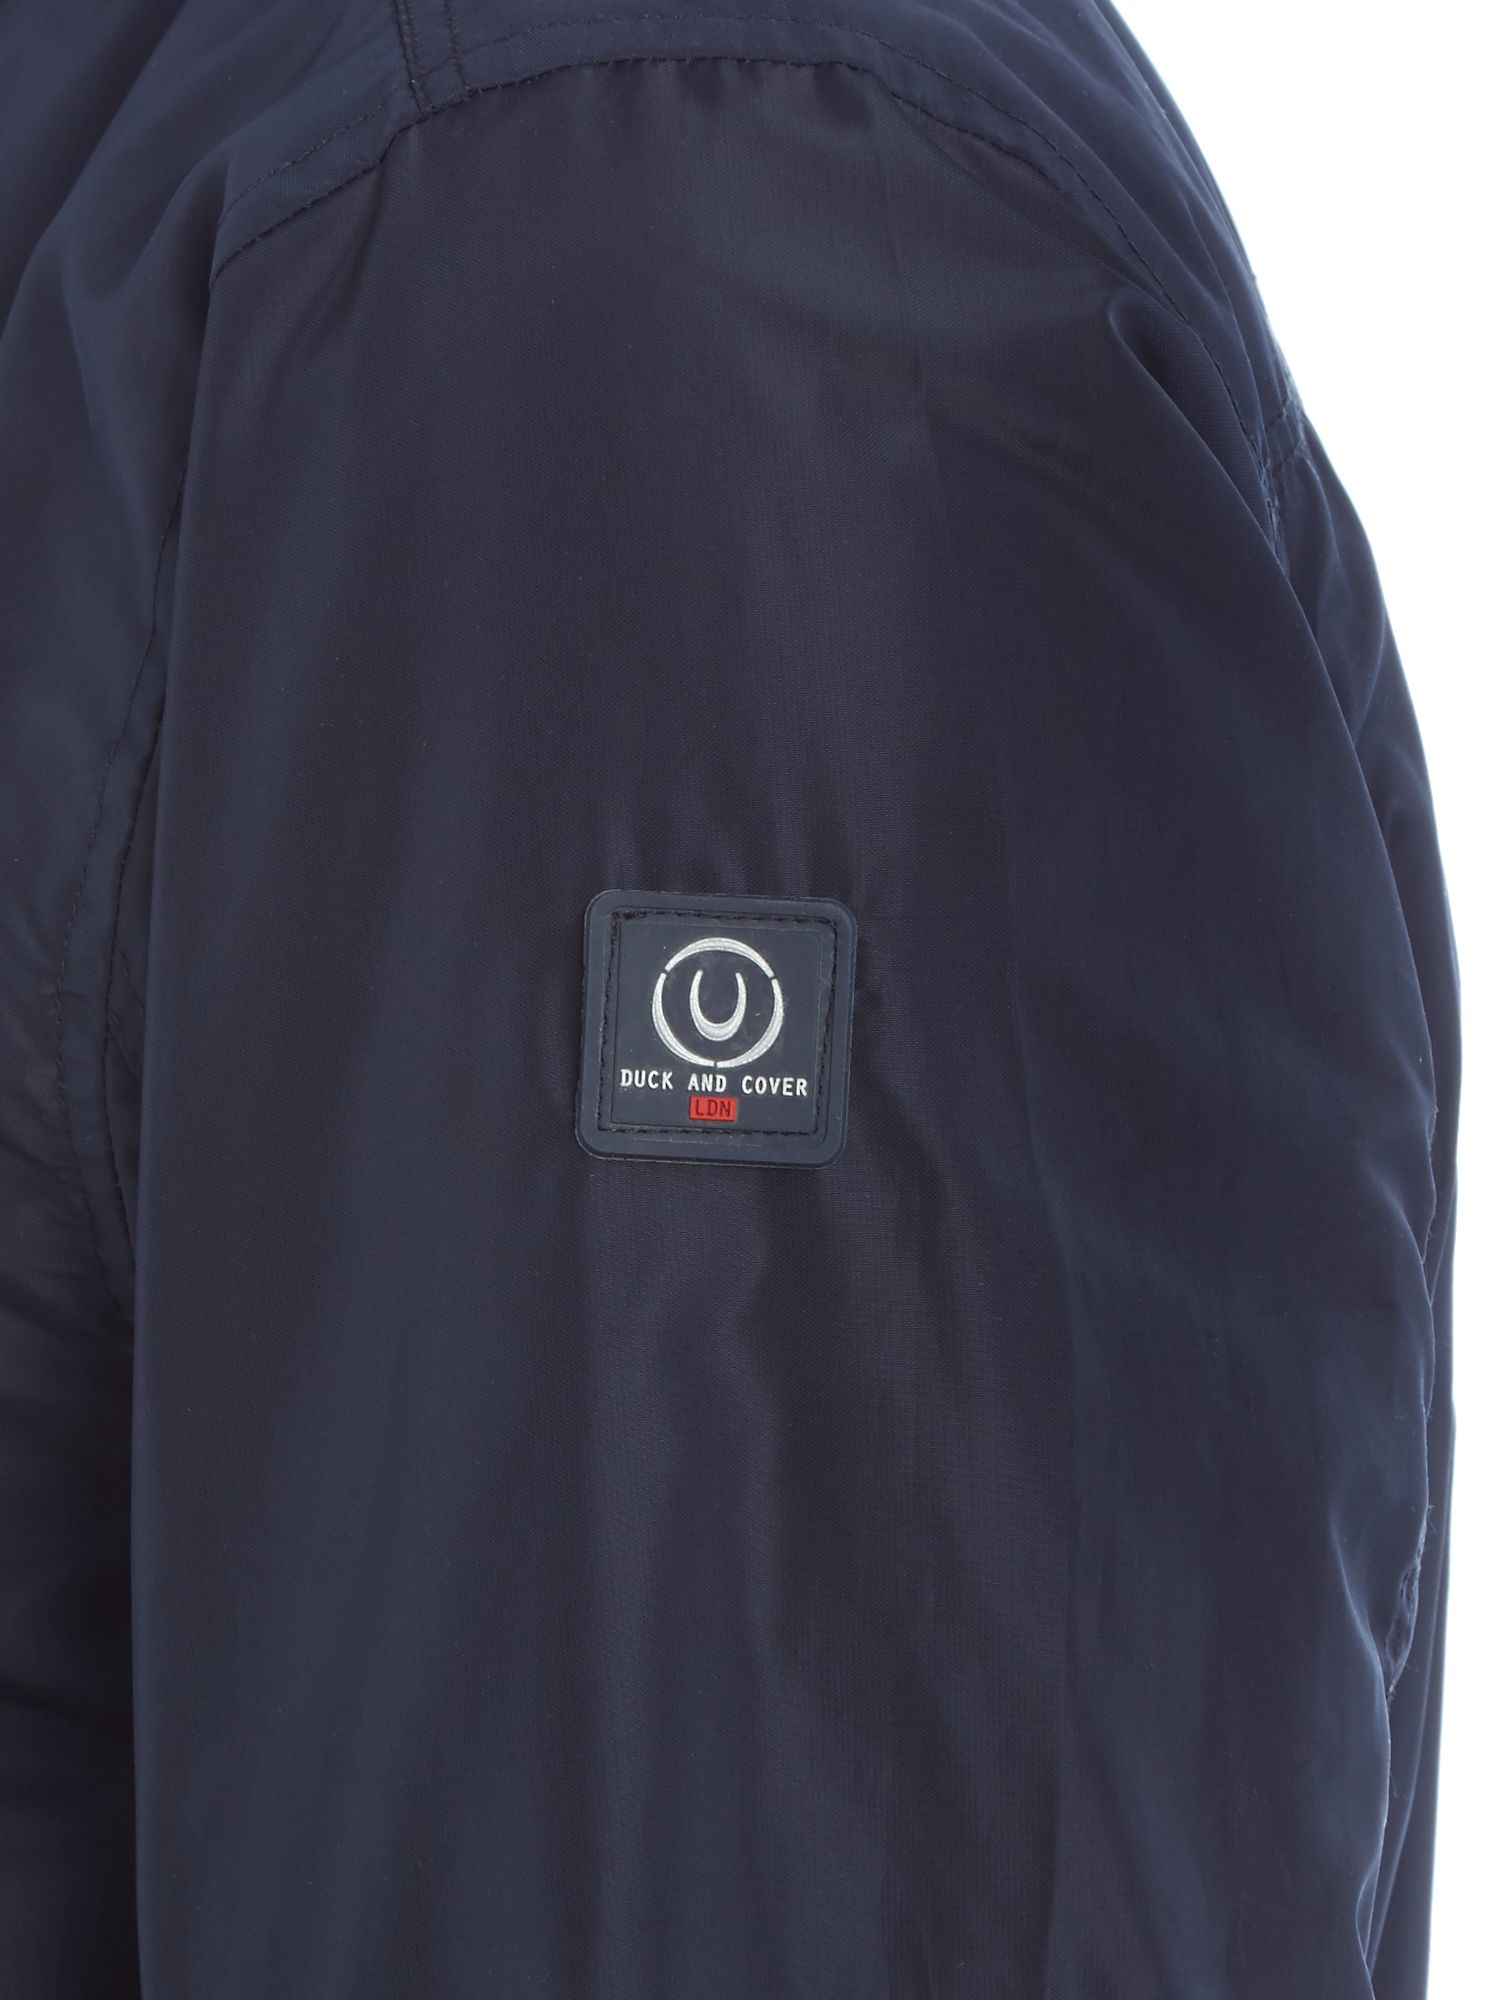 Duck and Cover Synthetic Oakenfold Jacket in French Navy (Blue) for Men